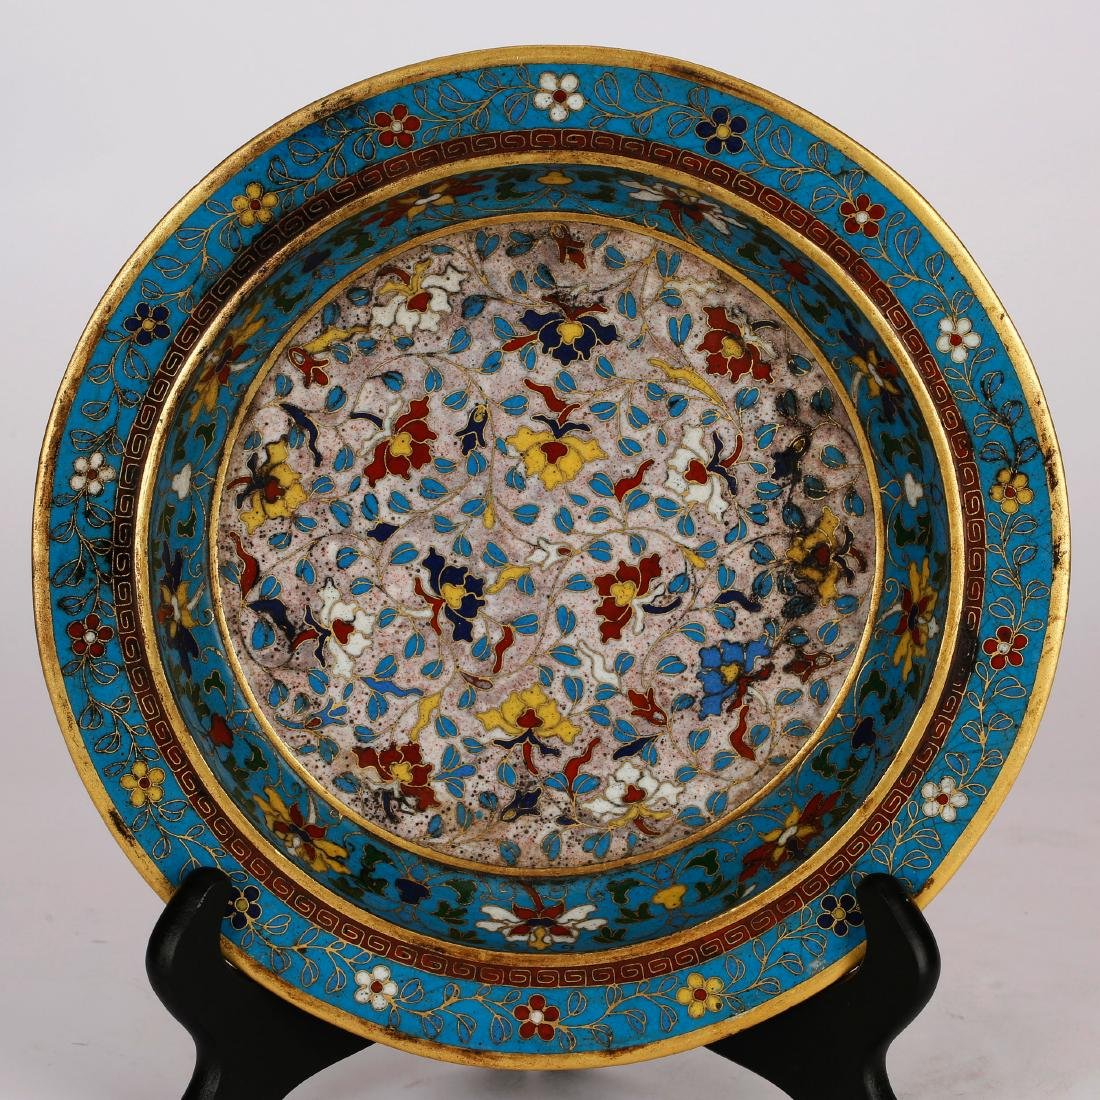 CHINESE CLOISONNE FOLIAGE PATTERN CHARGER